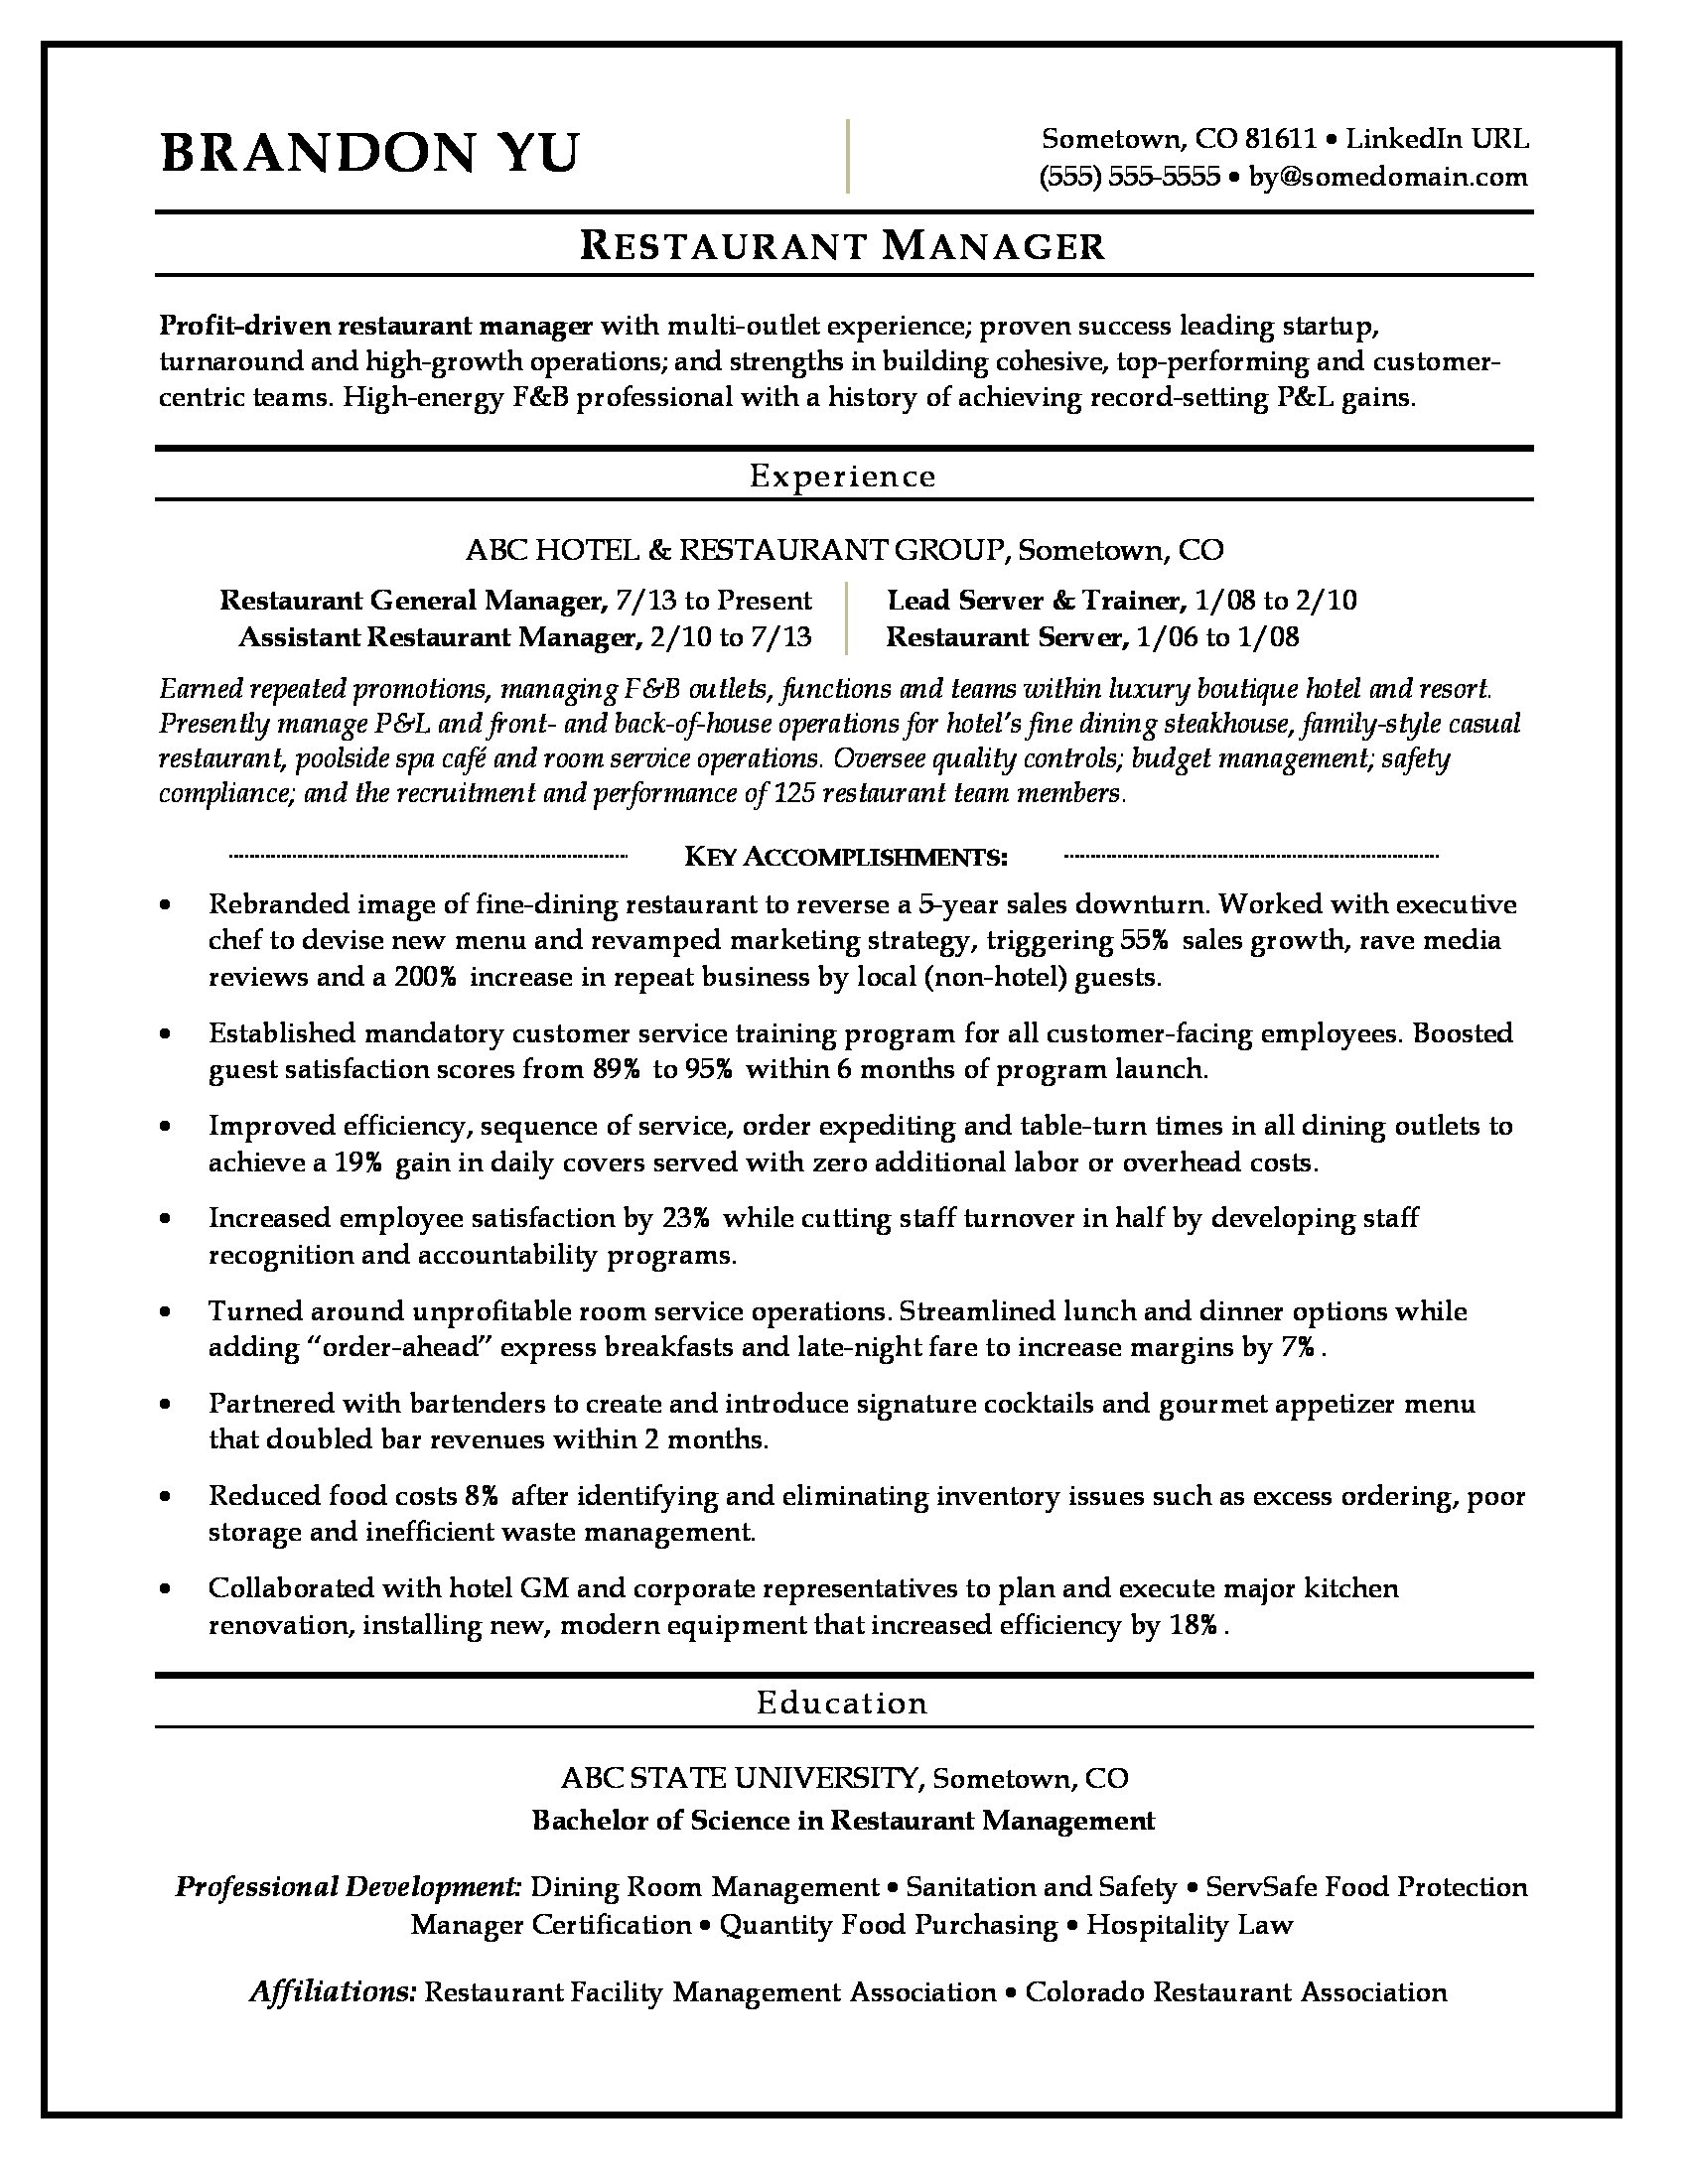 sample resume for a restaurant manager - Restaurant Manager Resumes